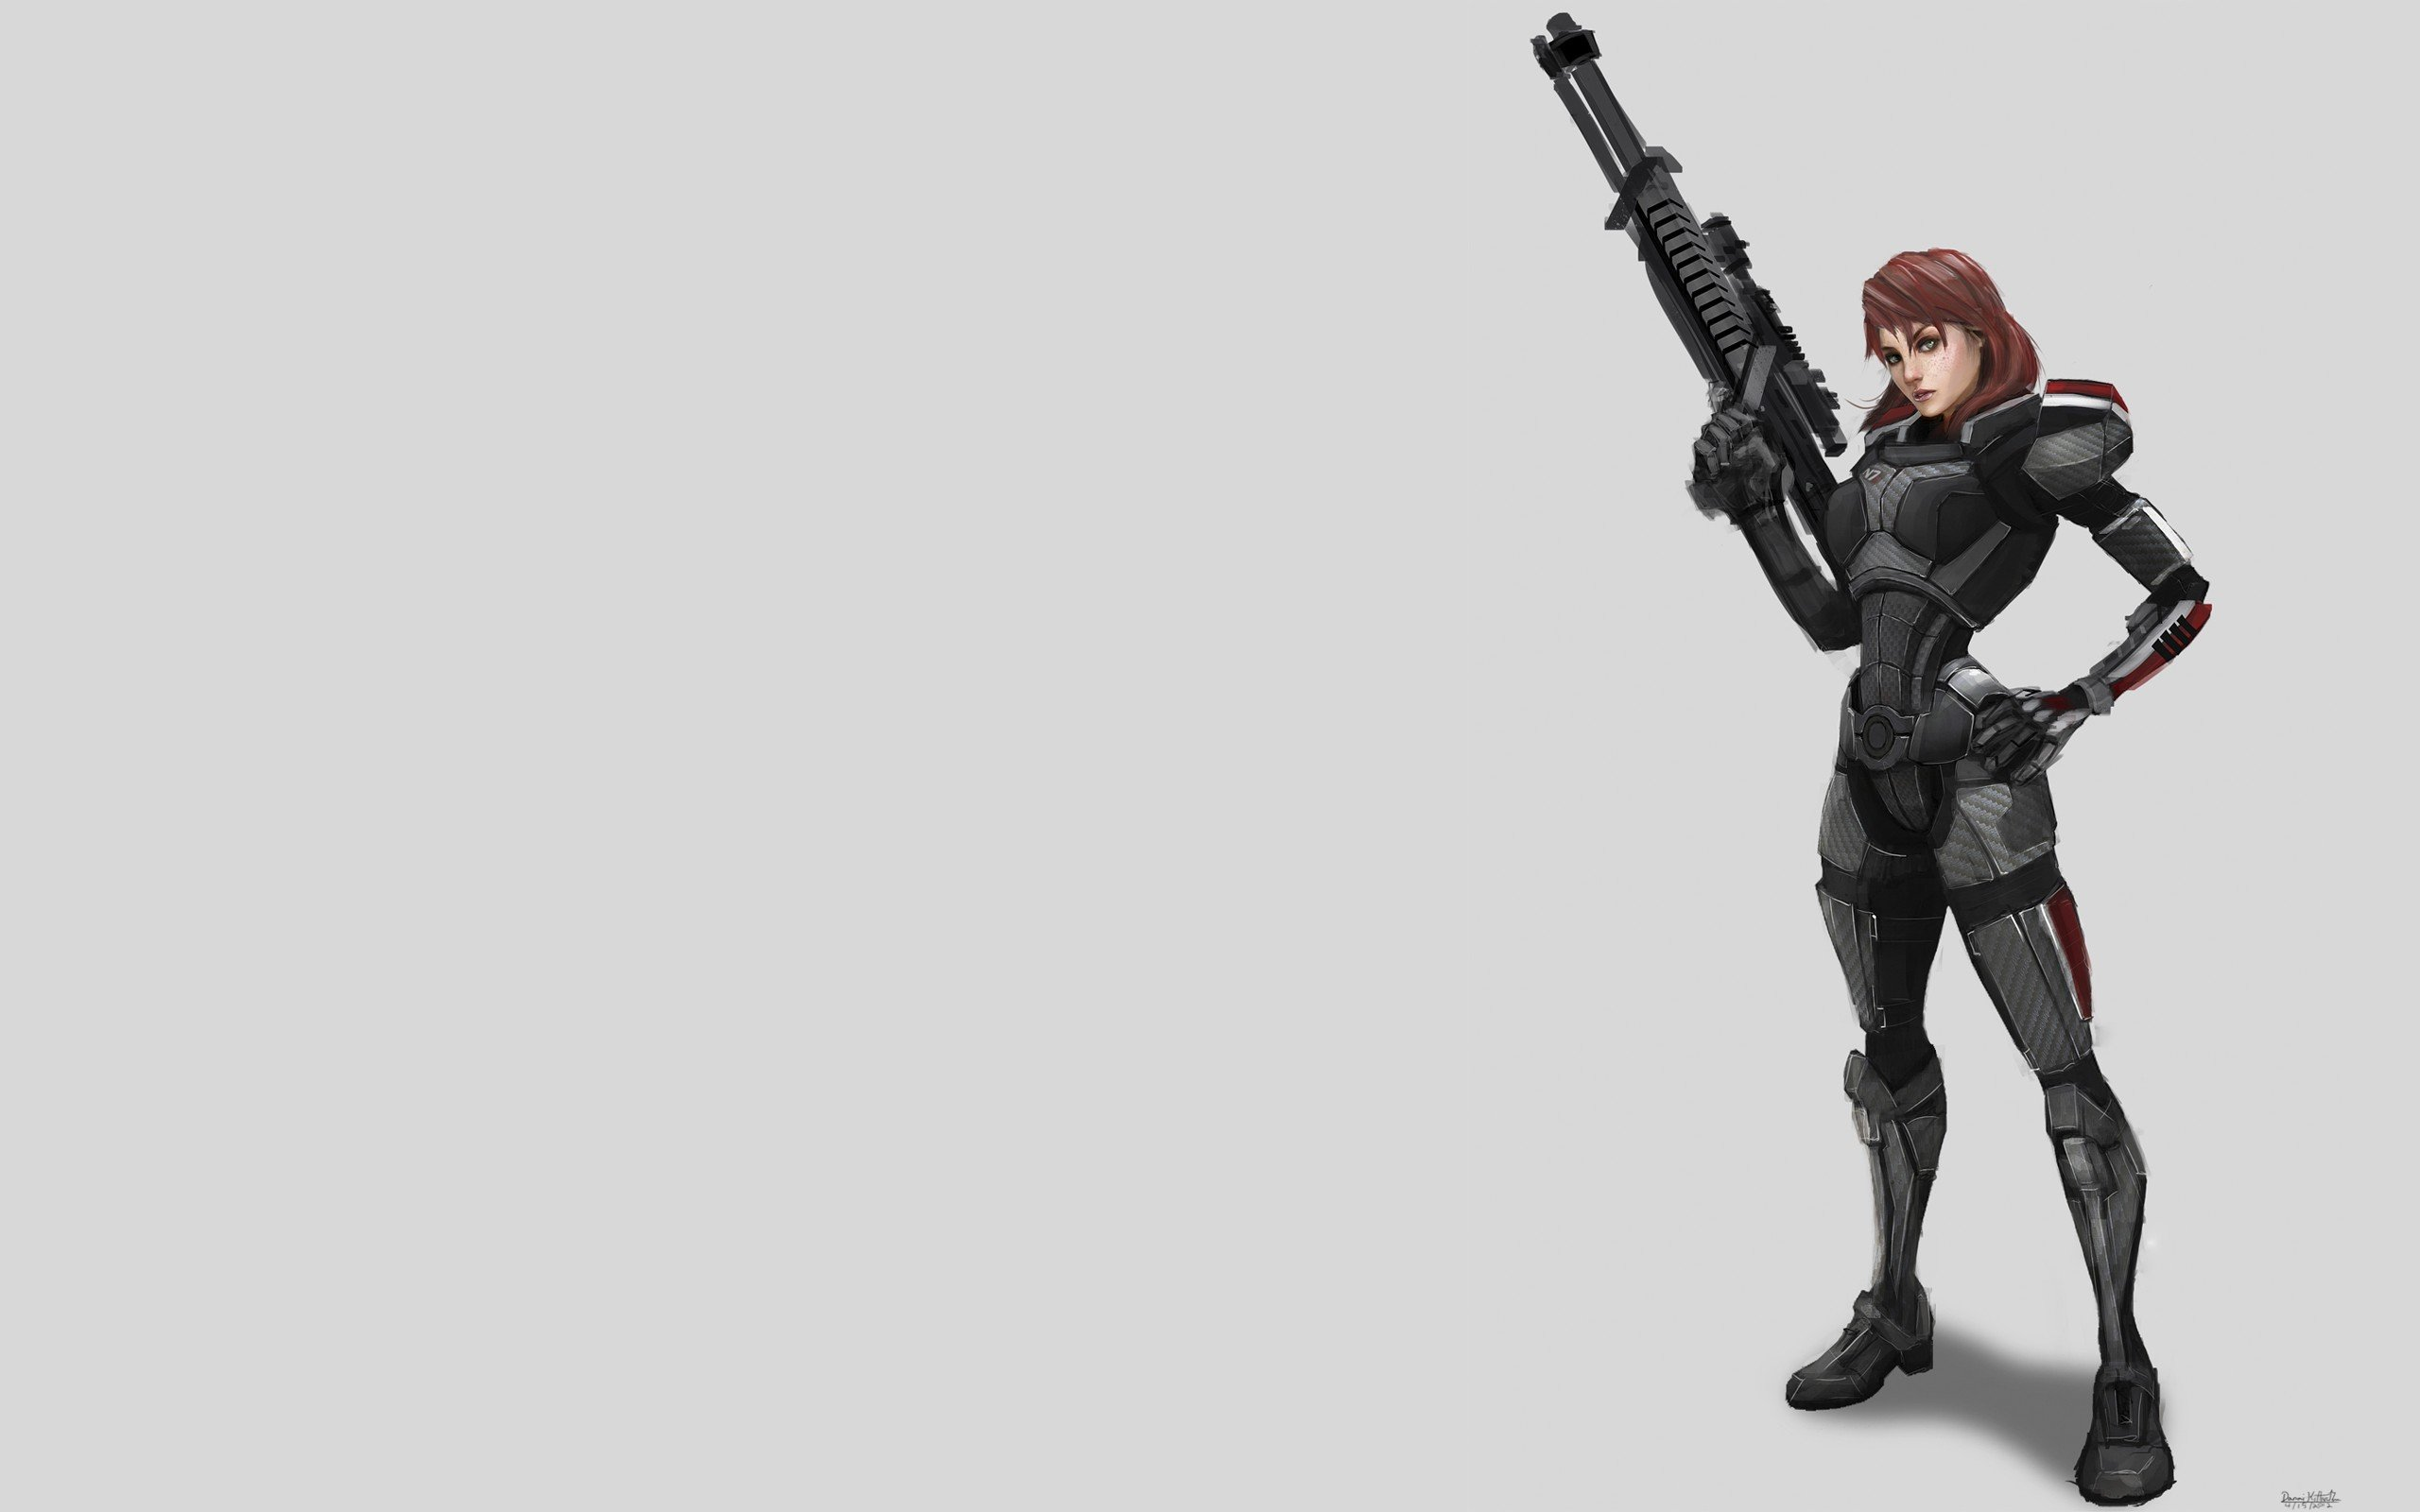 women video games Mass Effect artwork Mass Effect 3 FemShep Commander Shepard simple background